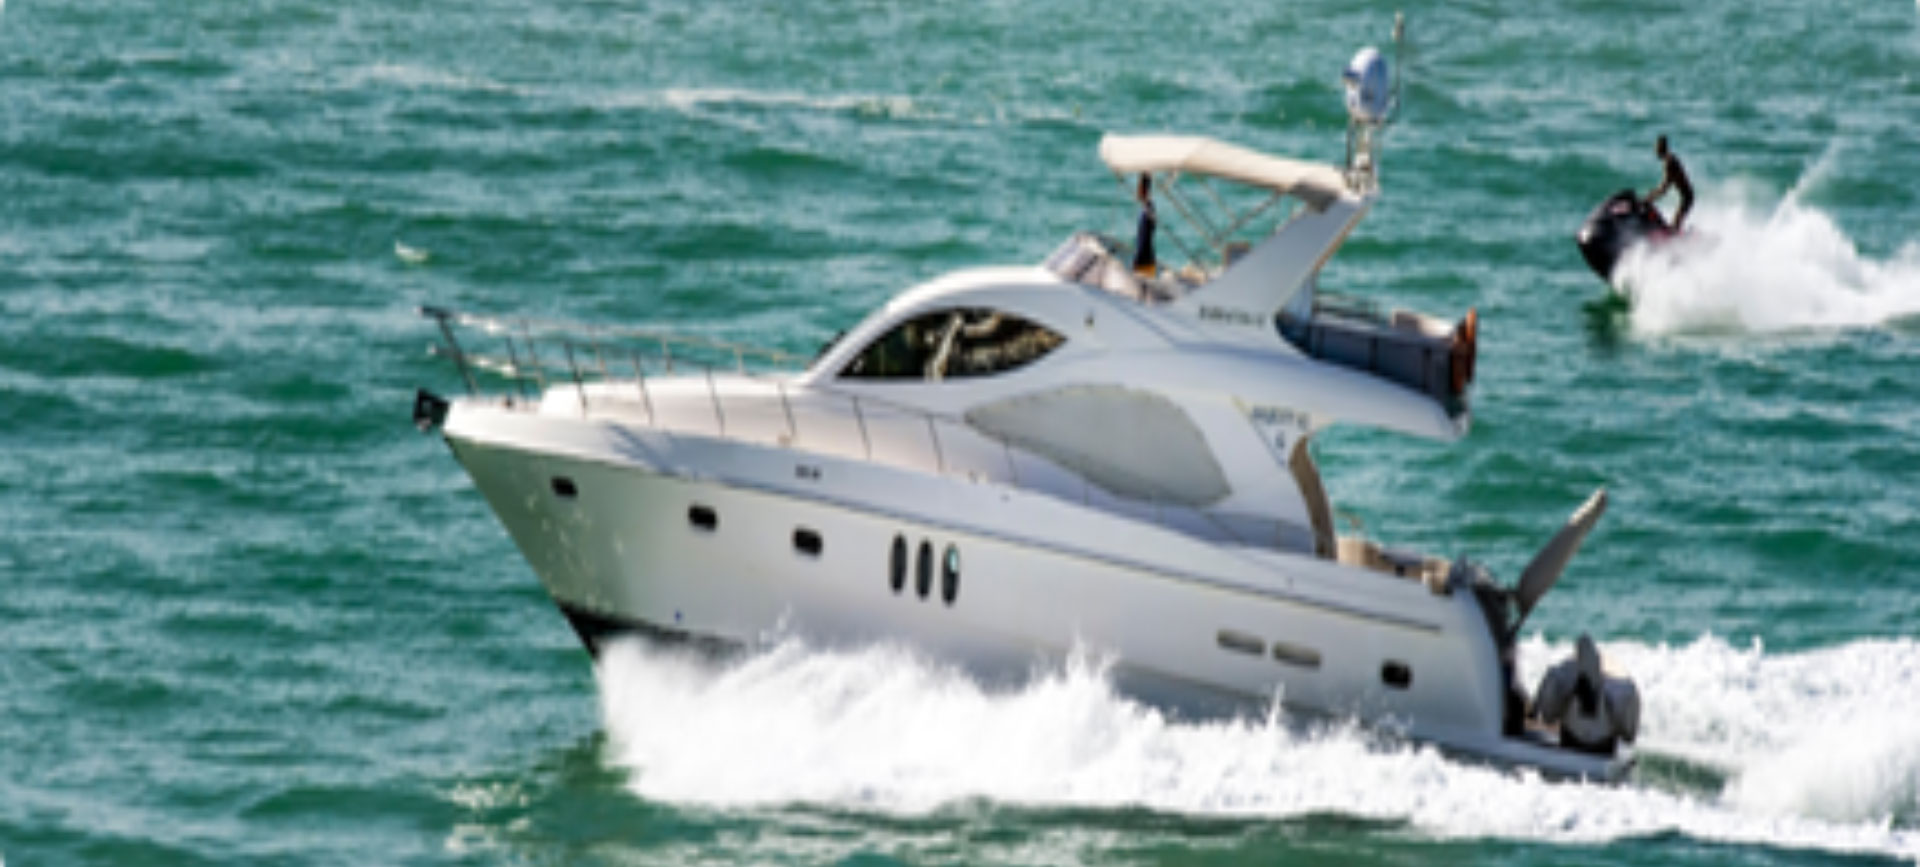 marine cargo insurance Marine cargo insurance in international shipping of ocean freight from the usa the majority of international sea freight shipments shipped with international shipping companies (freight forwarders, nvoccs) arrive to destinations free of damage and loss.